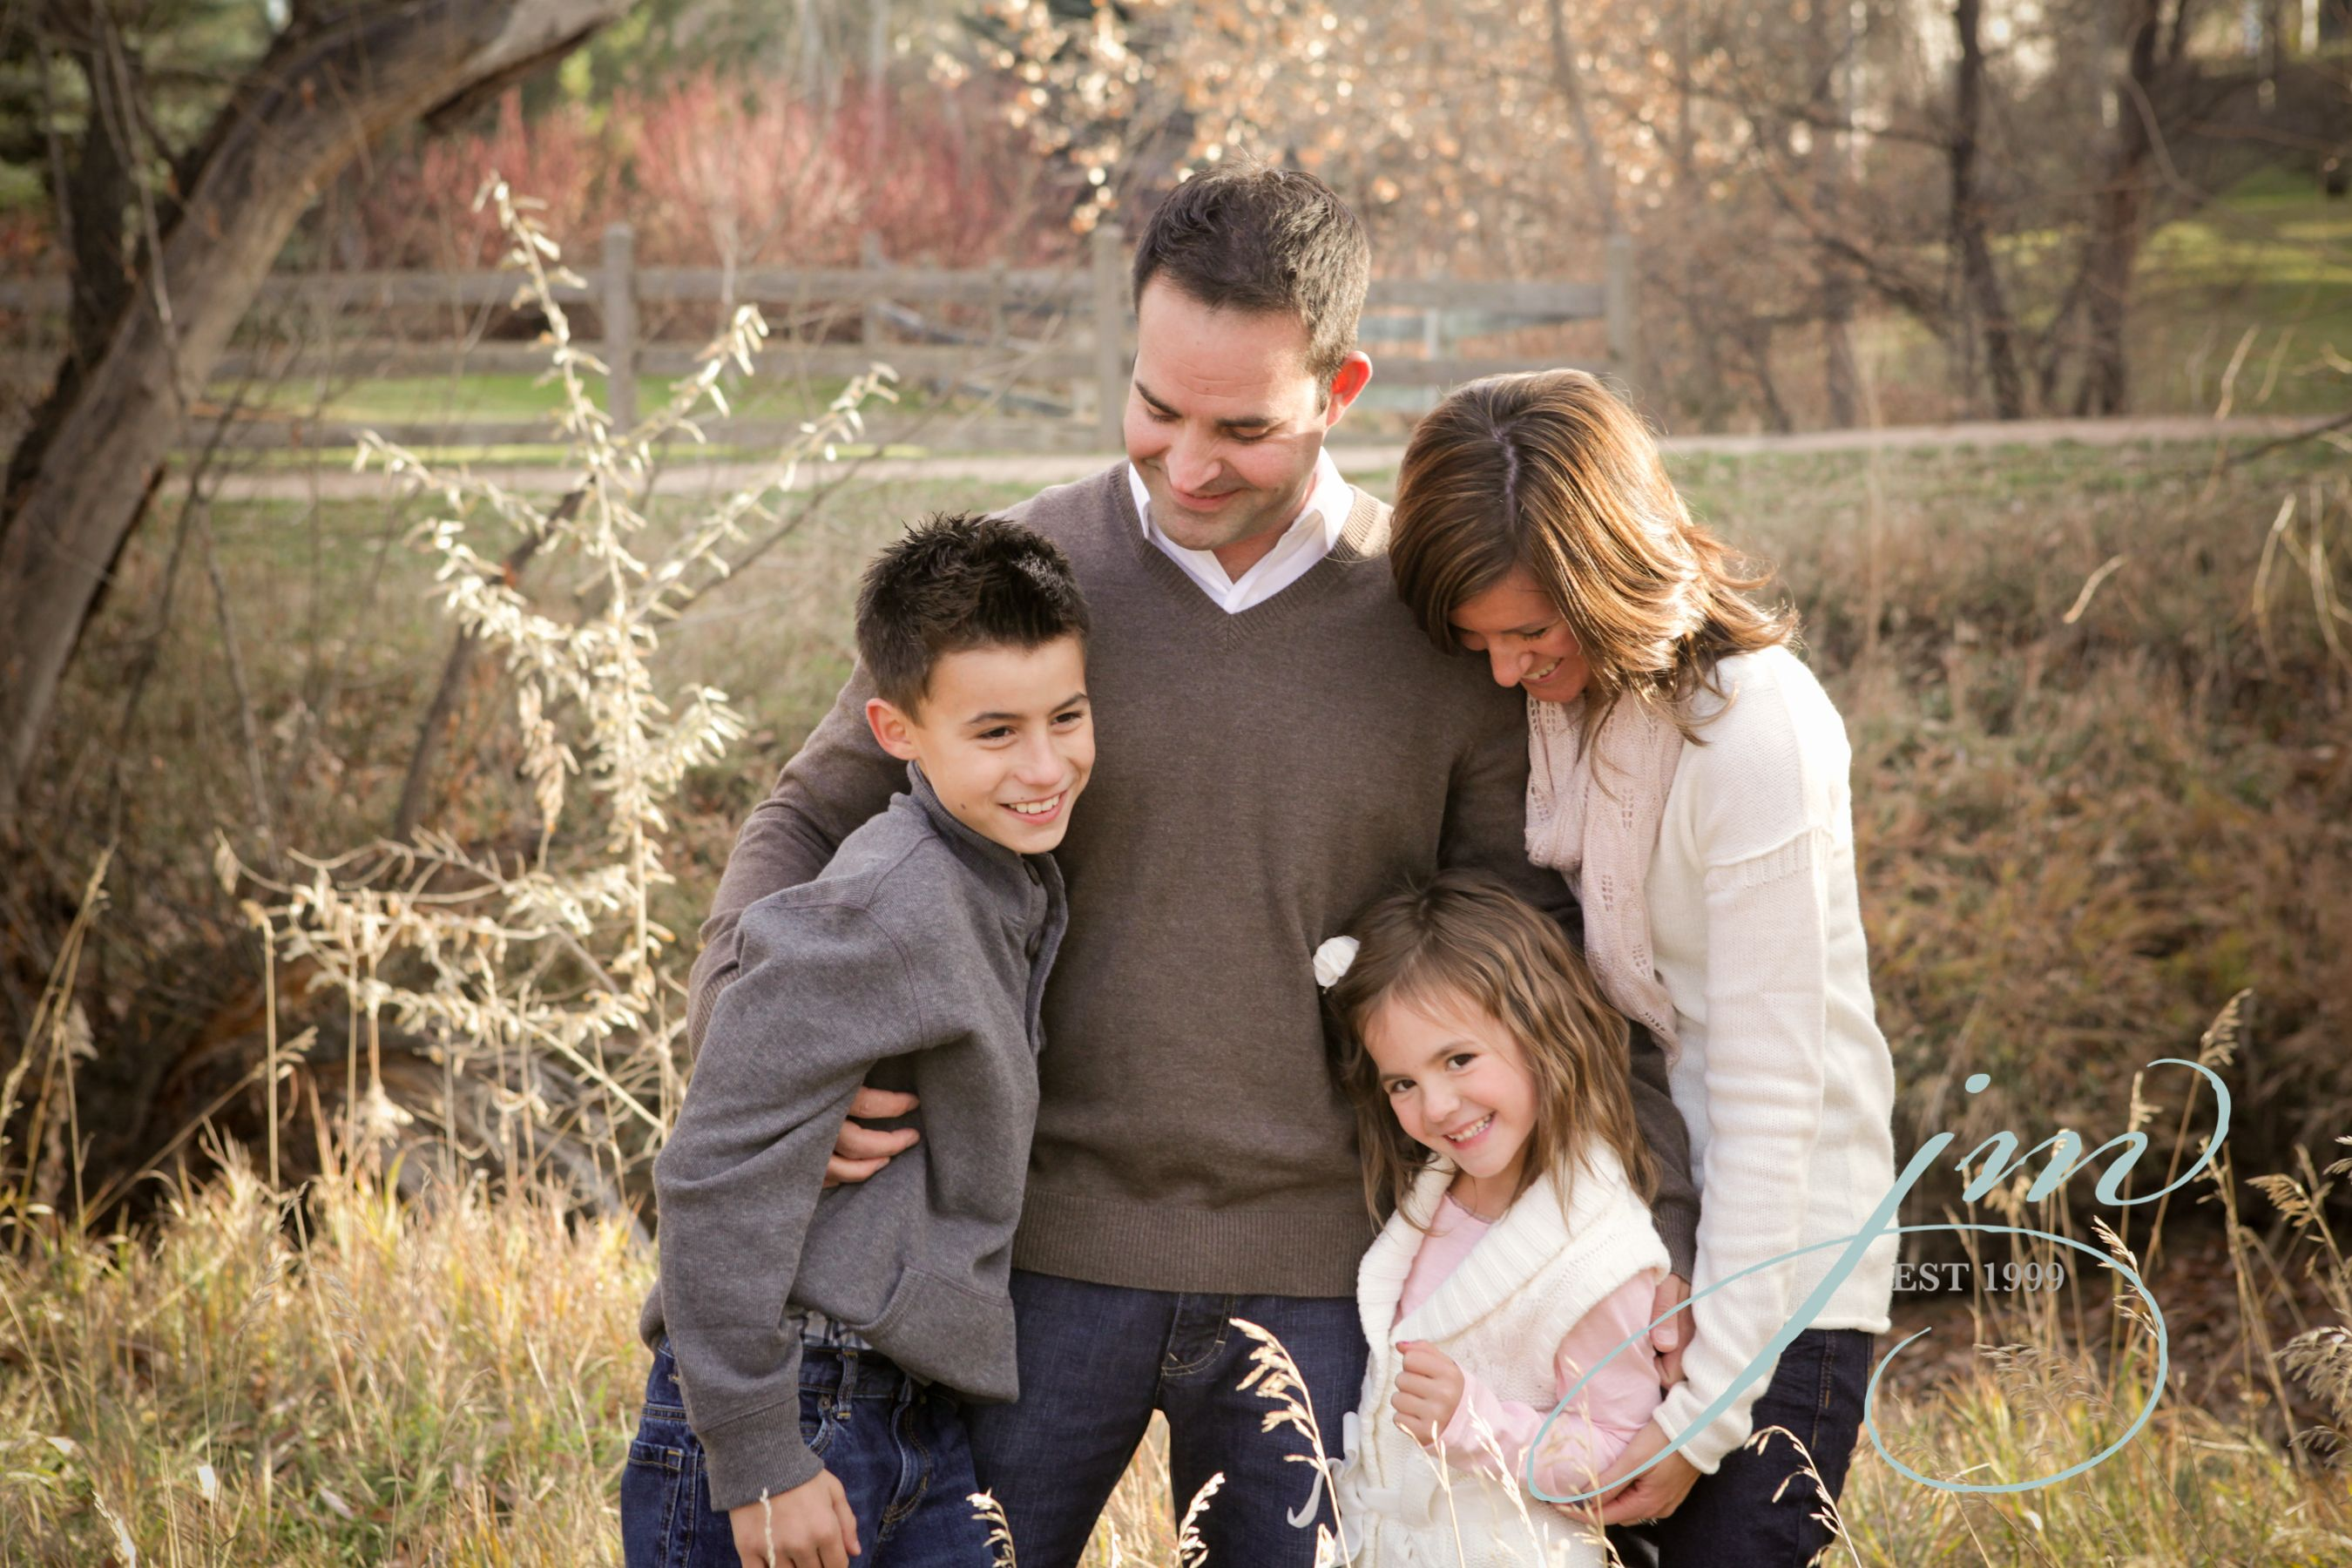 What to Wear in Family Pictures by Color